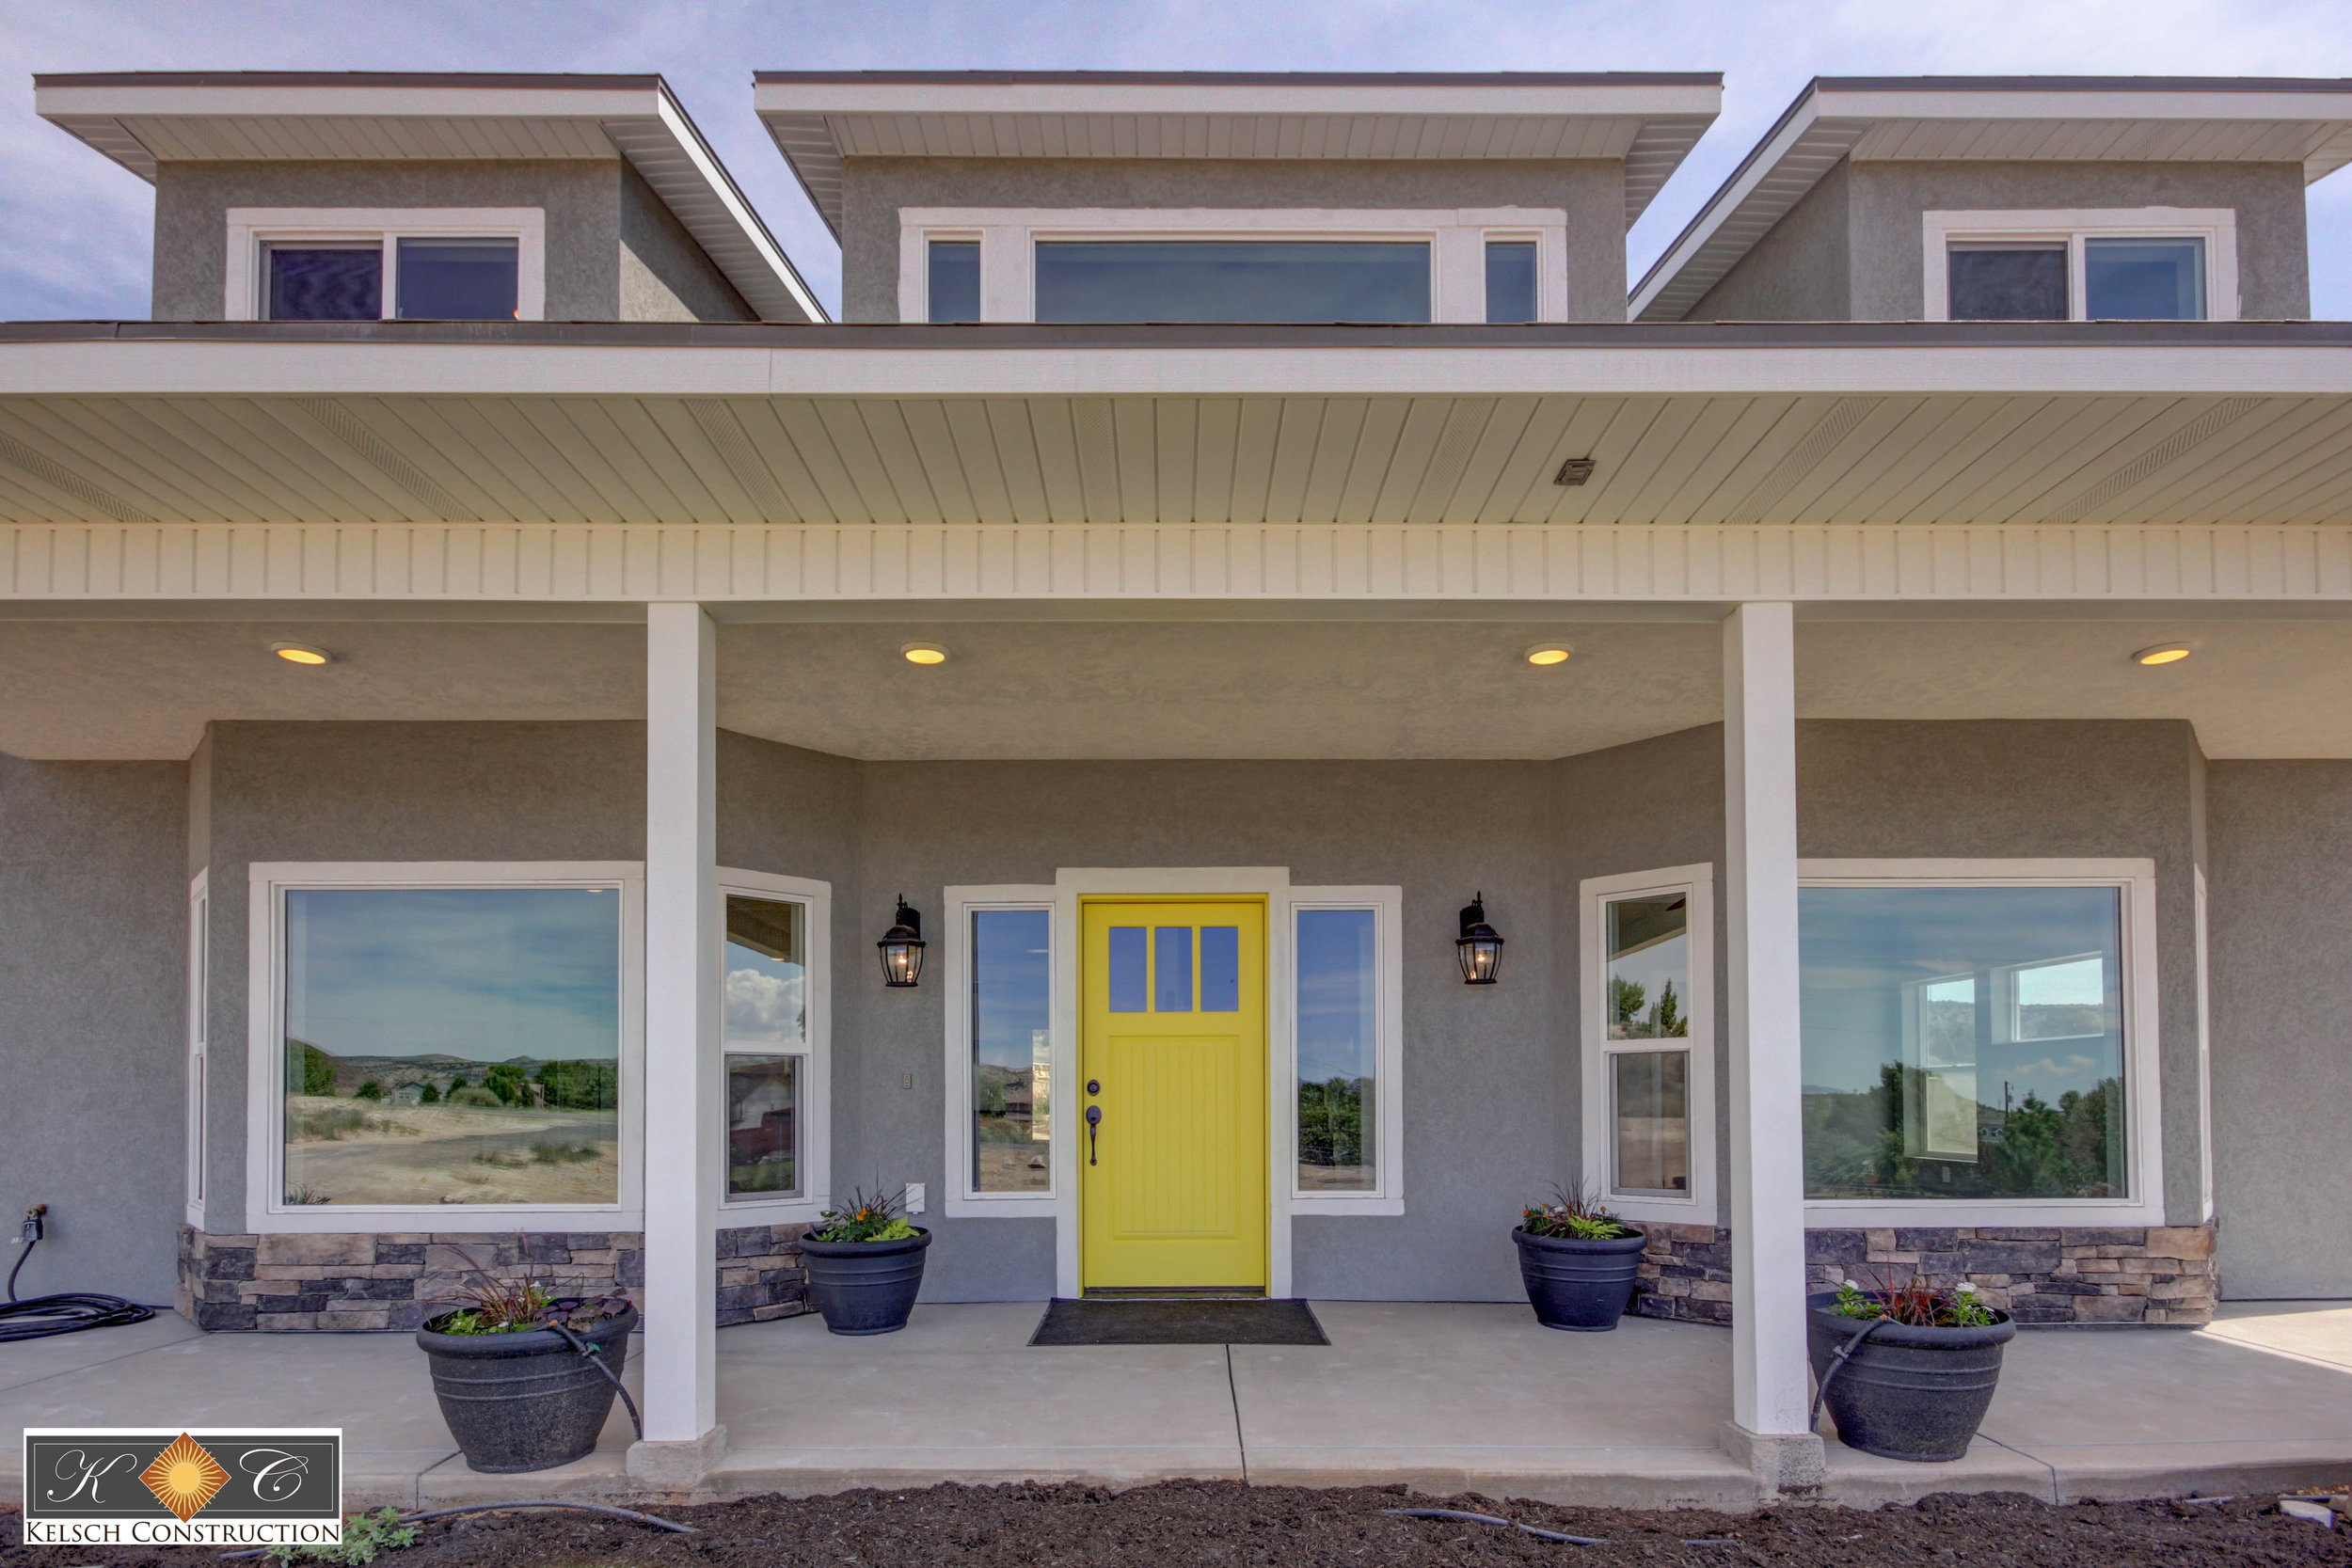 Front Image of Home with Yellow Door